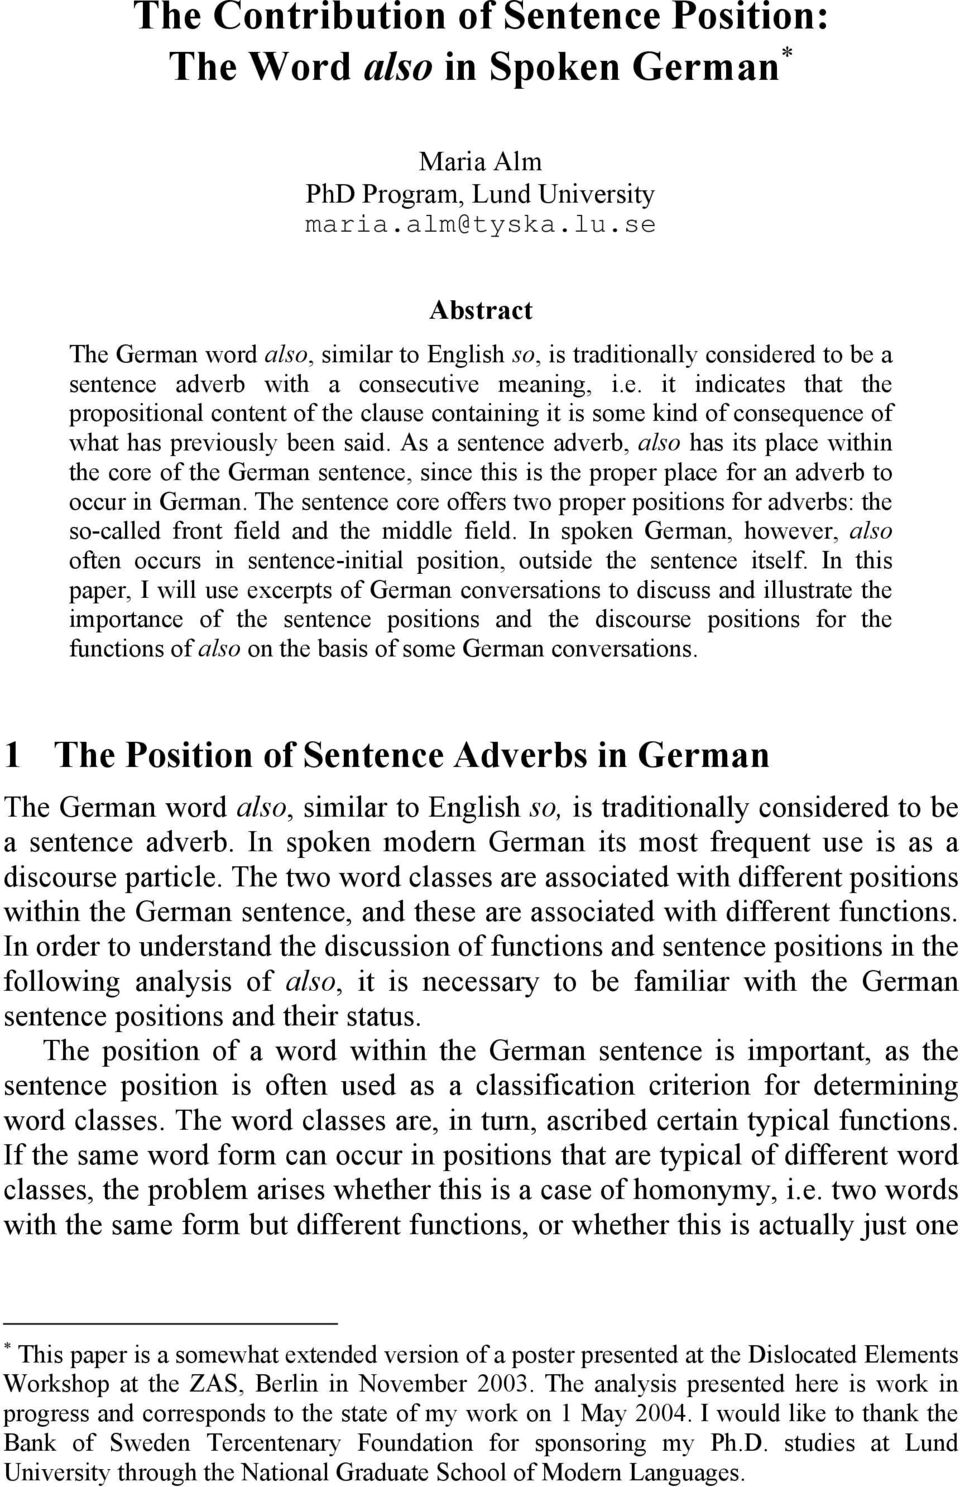 As a sentence adverb, also has its place within the core of the German sentence, since this is the proper place for an adverb to occur in German.